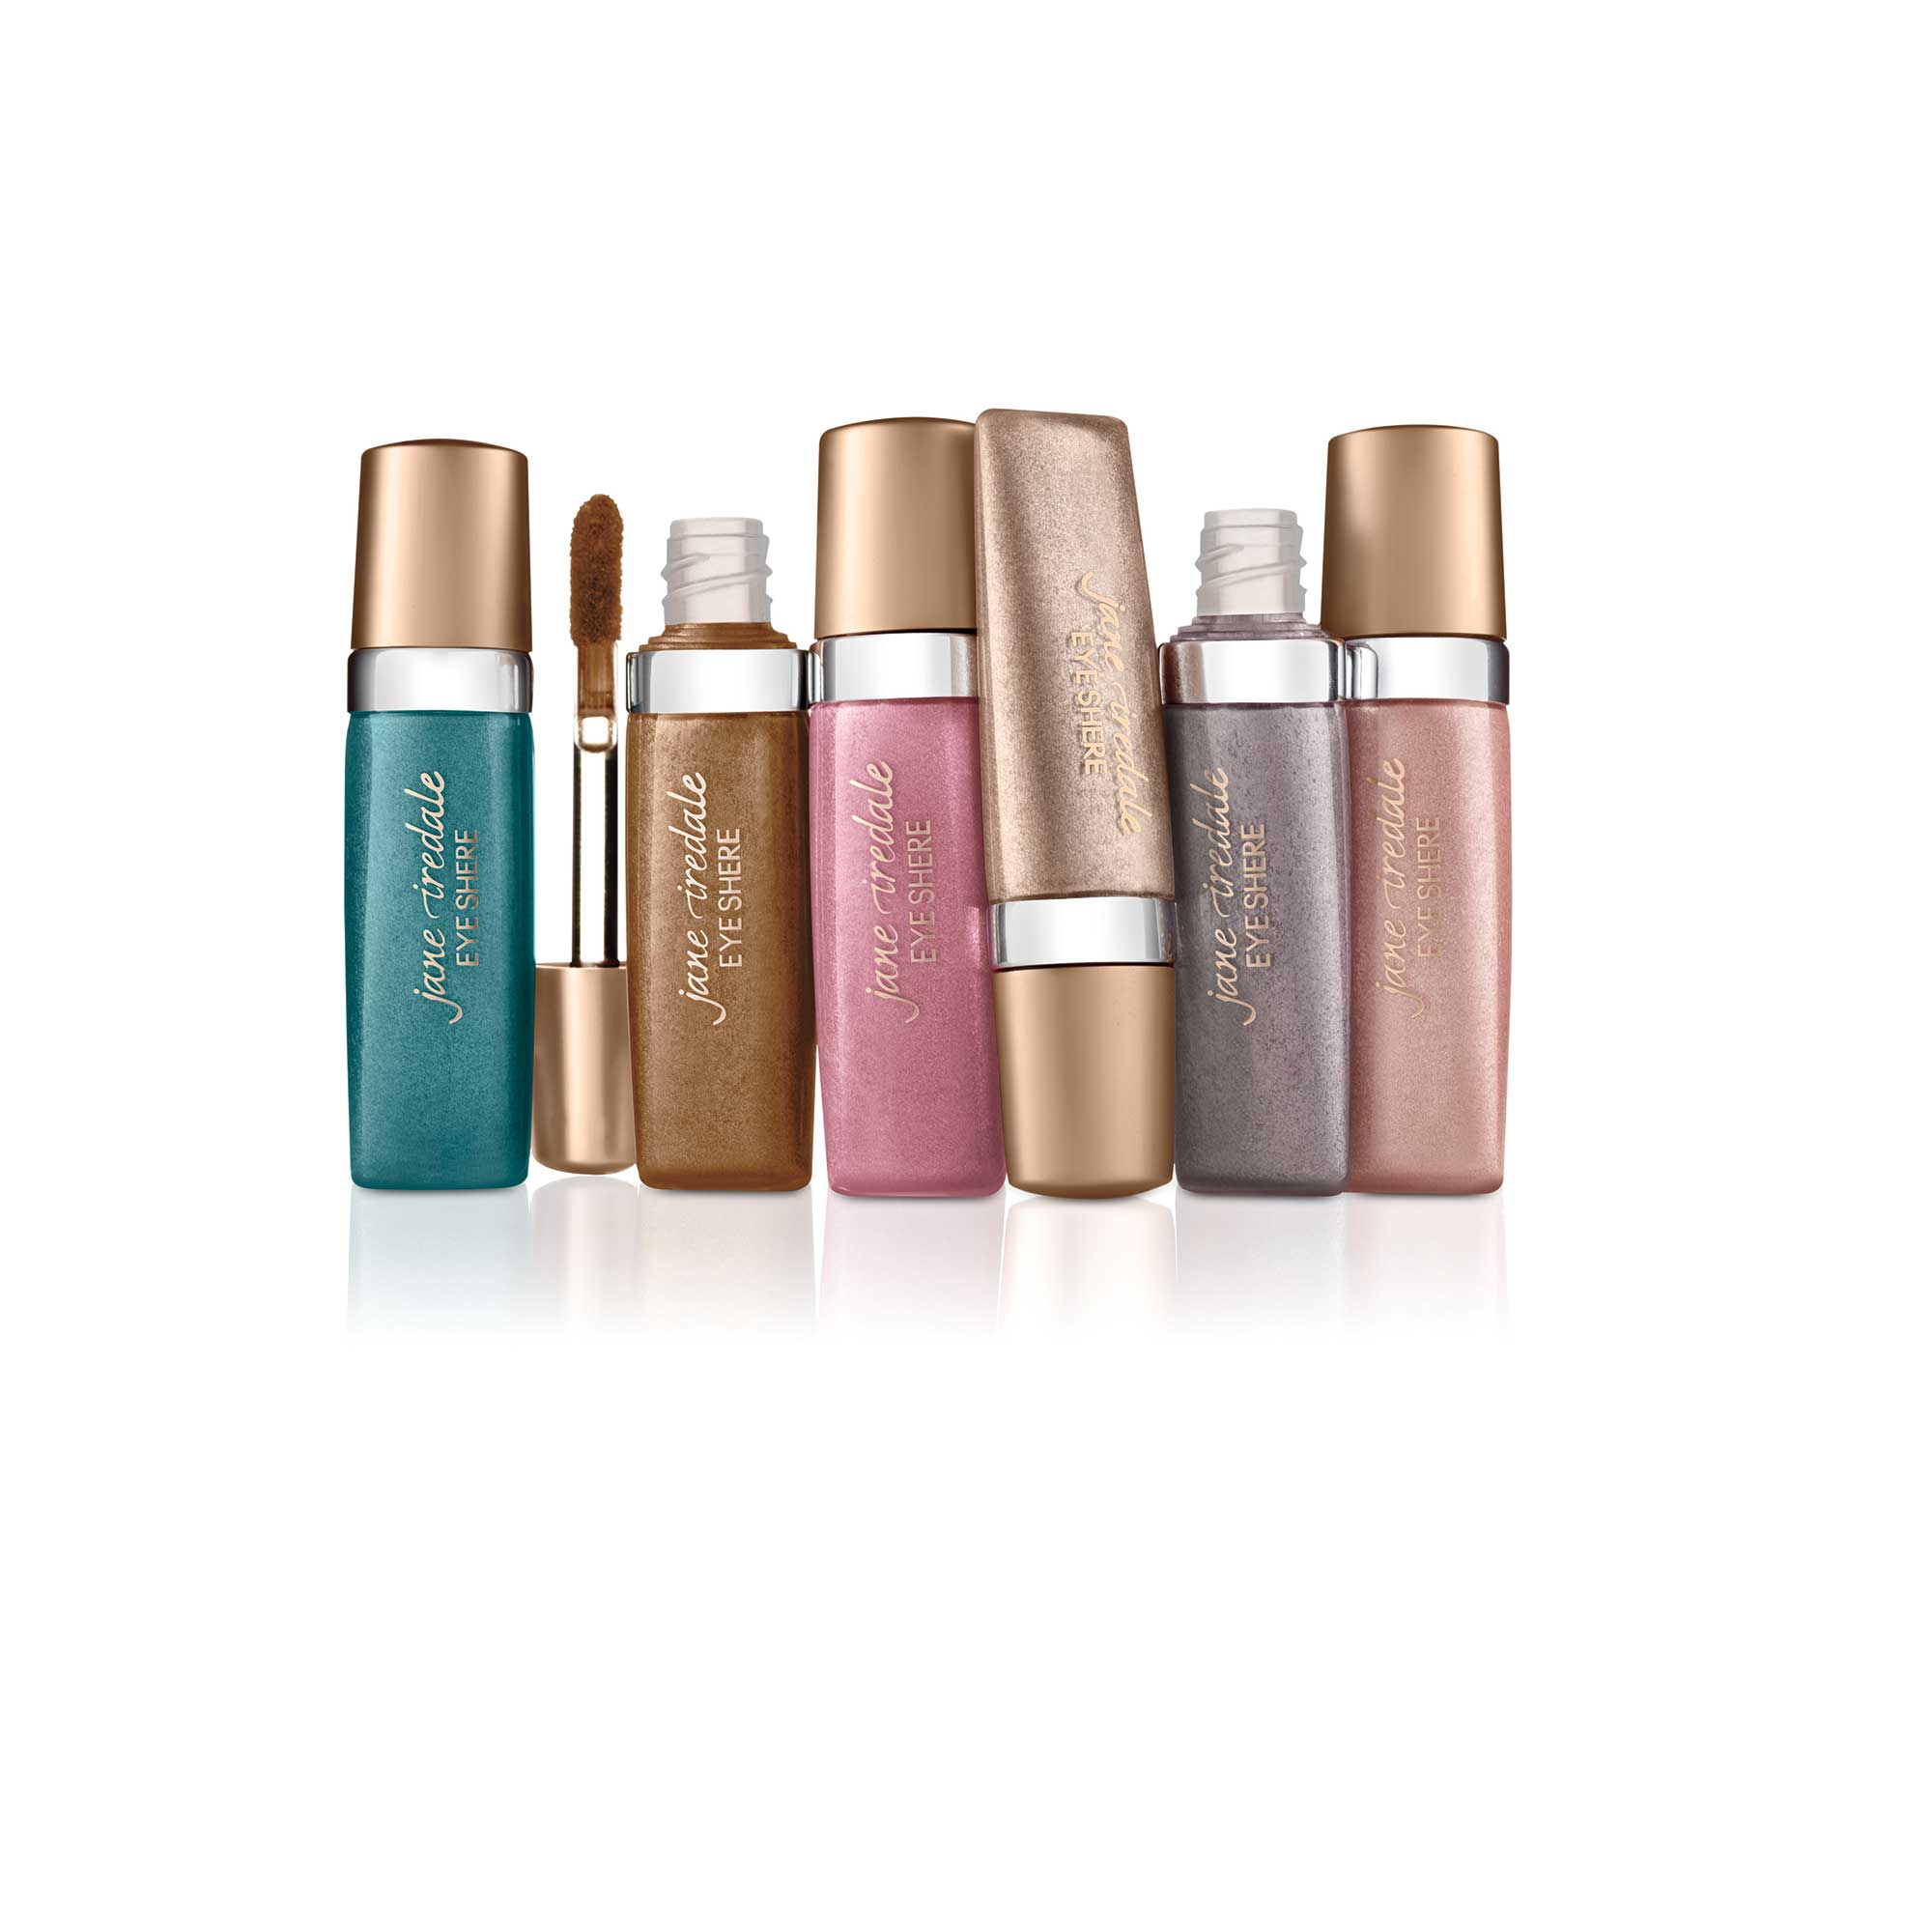 Eye Sheres (eye gloss) Liquid Eyeshadow- 3.8 g